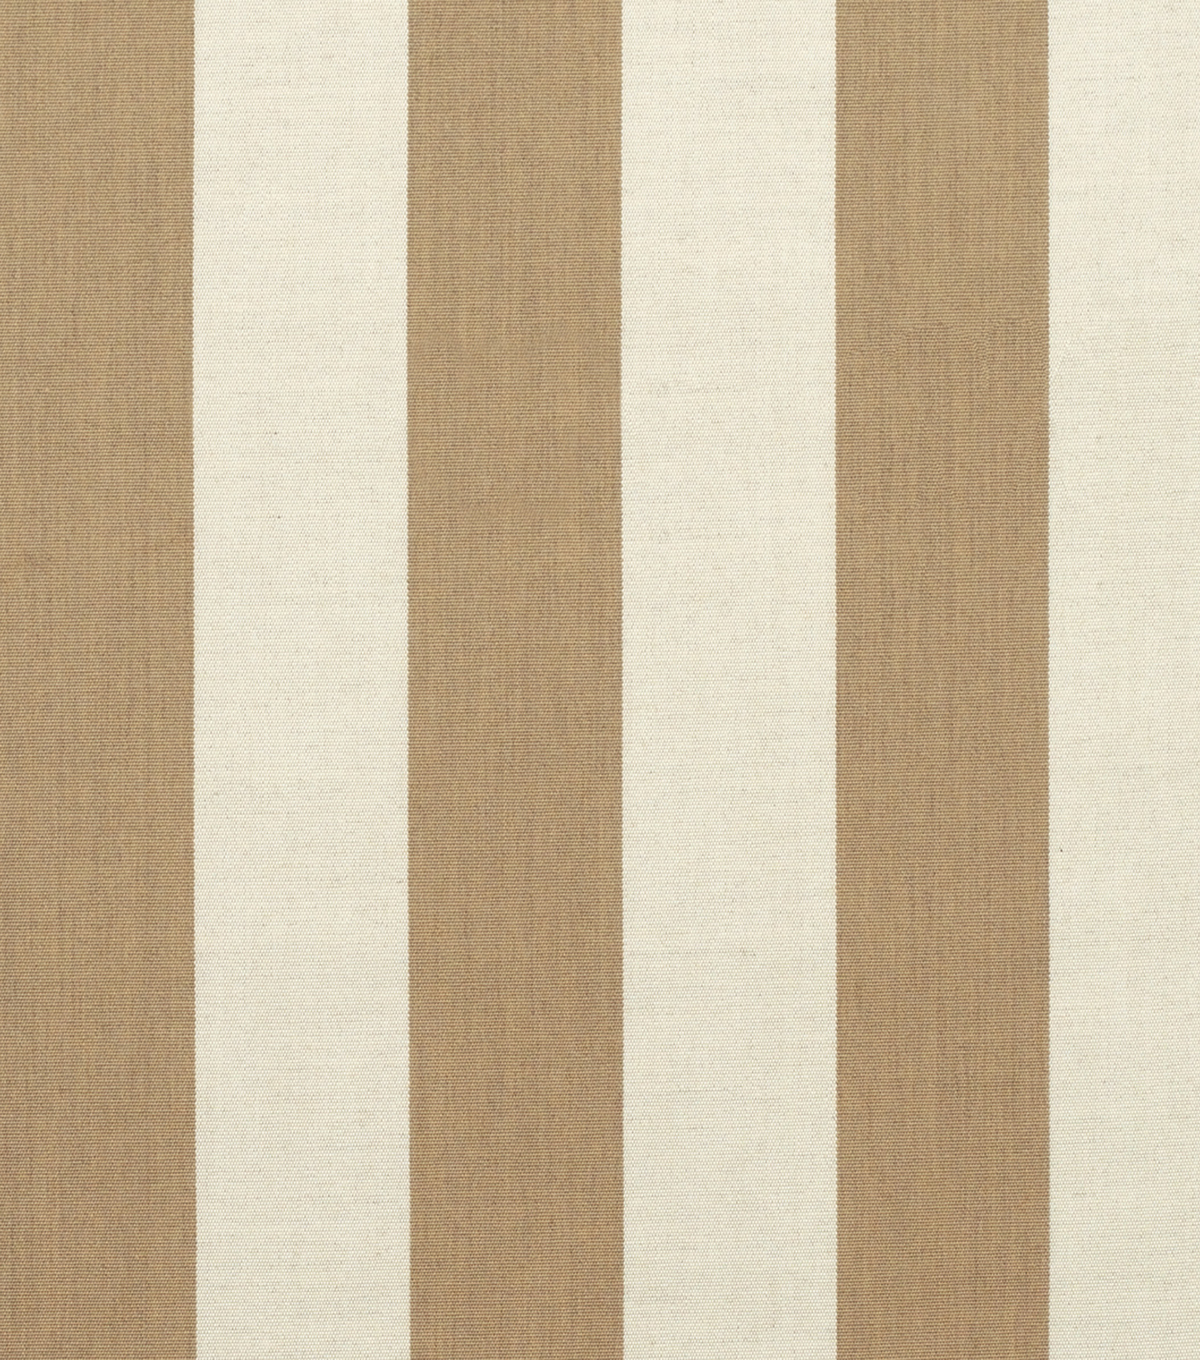 Sunbr Furn Stripes Maxim 5674 Heat Swatch